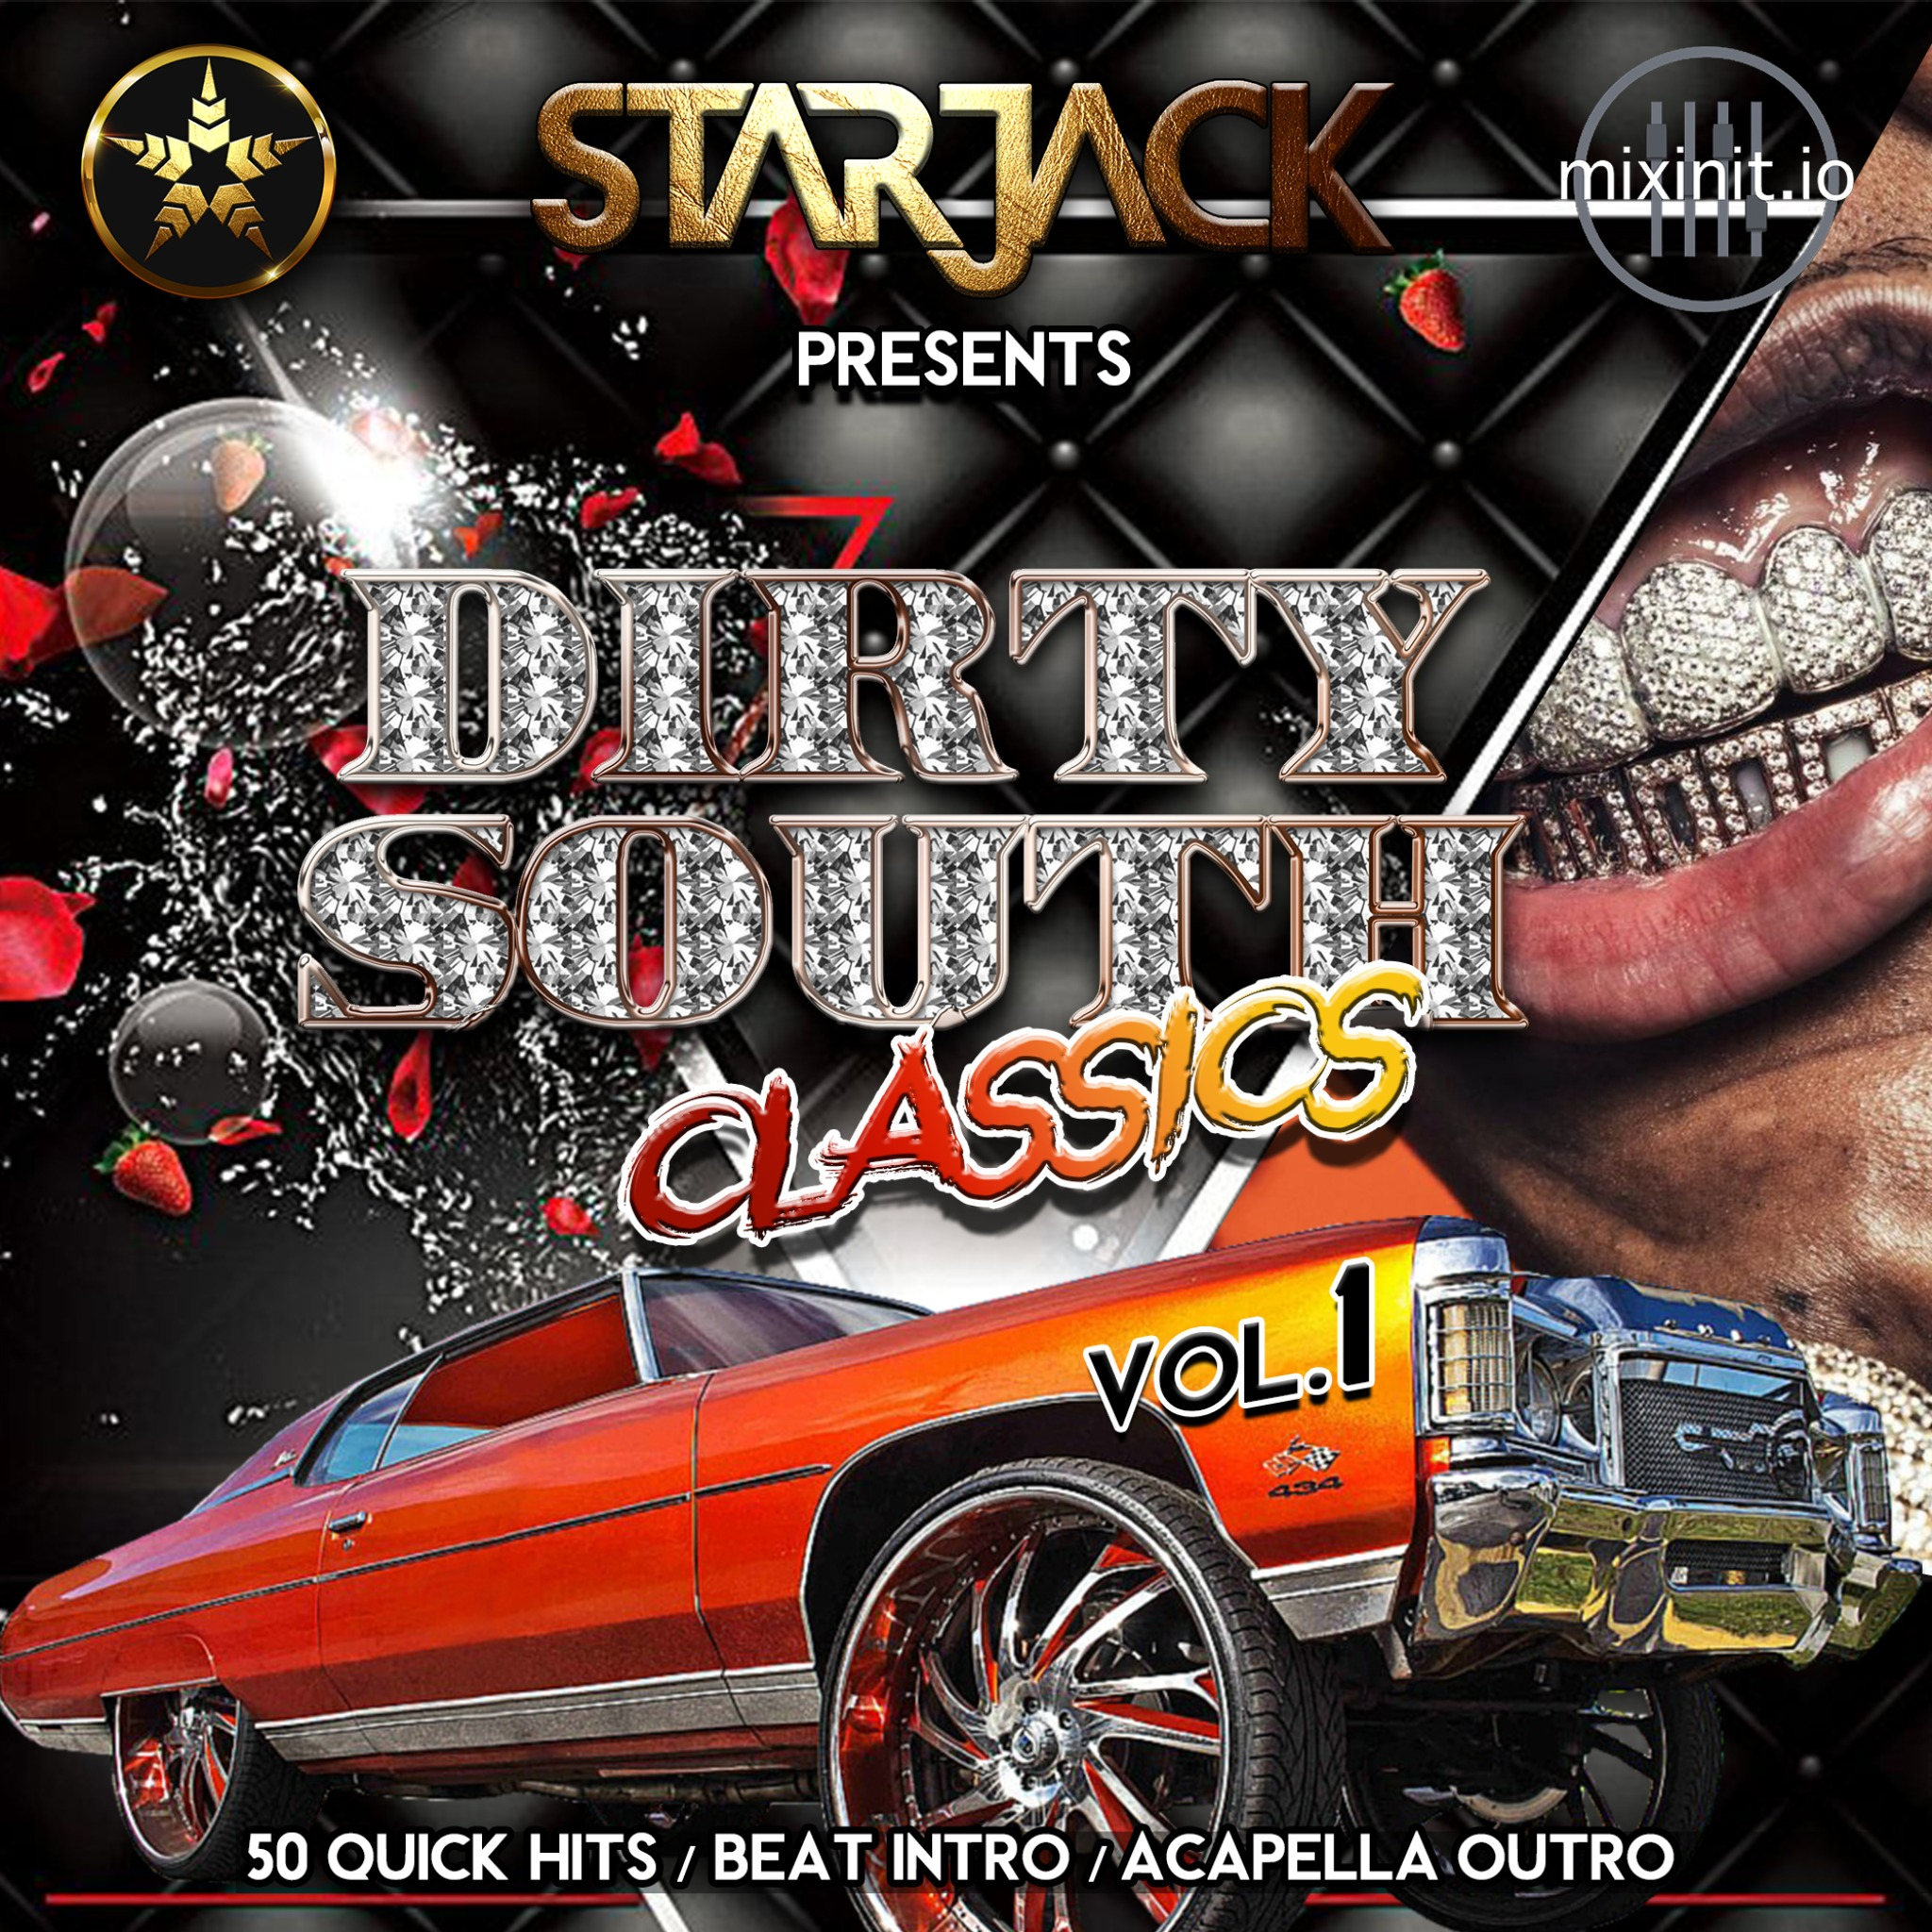 Starjack - Dirty South Classics Vol.1 (Acapella Out Quick Hits)